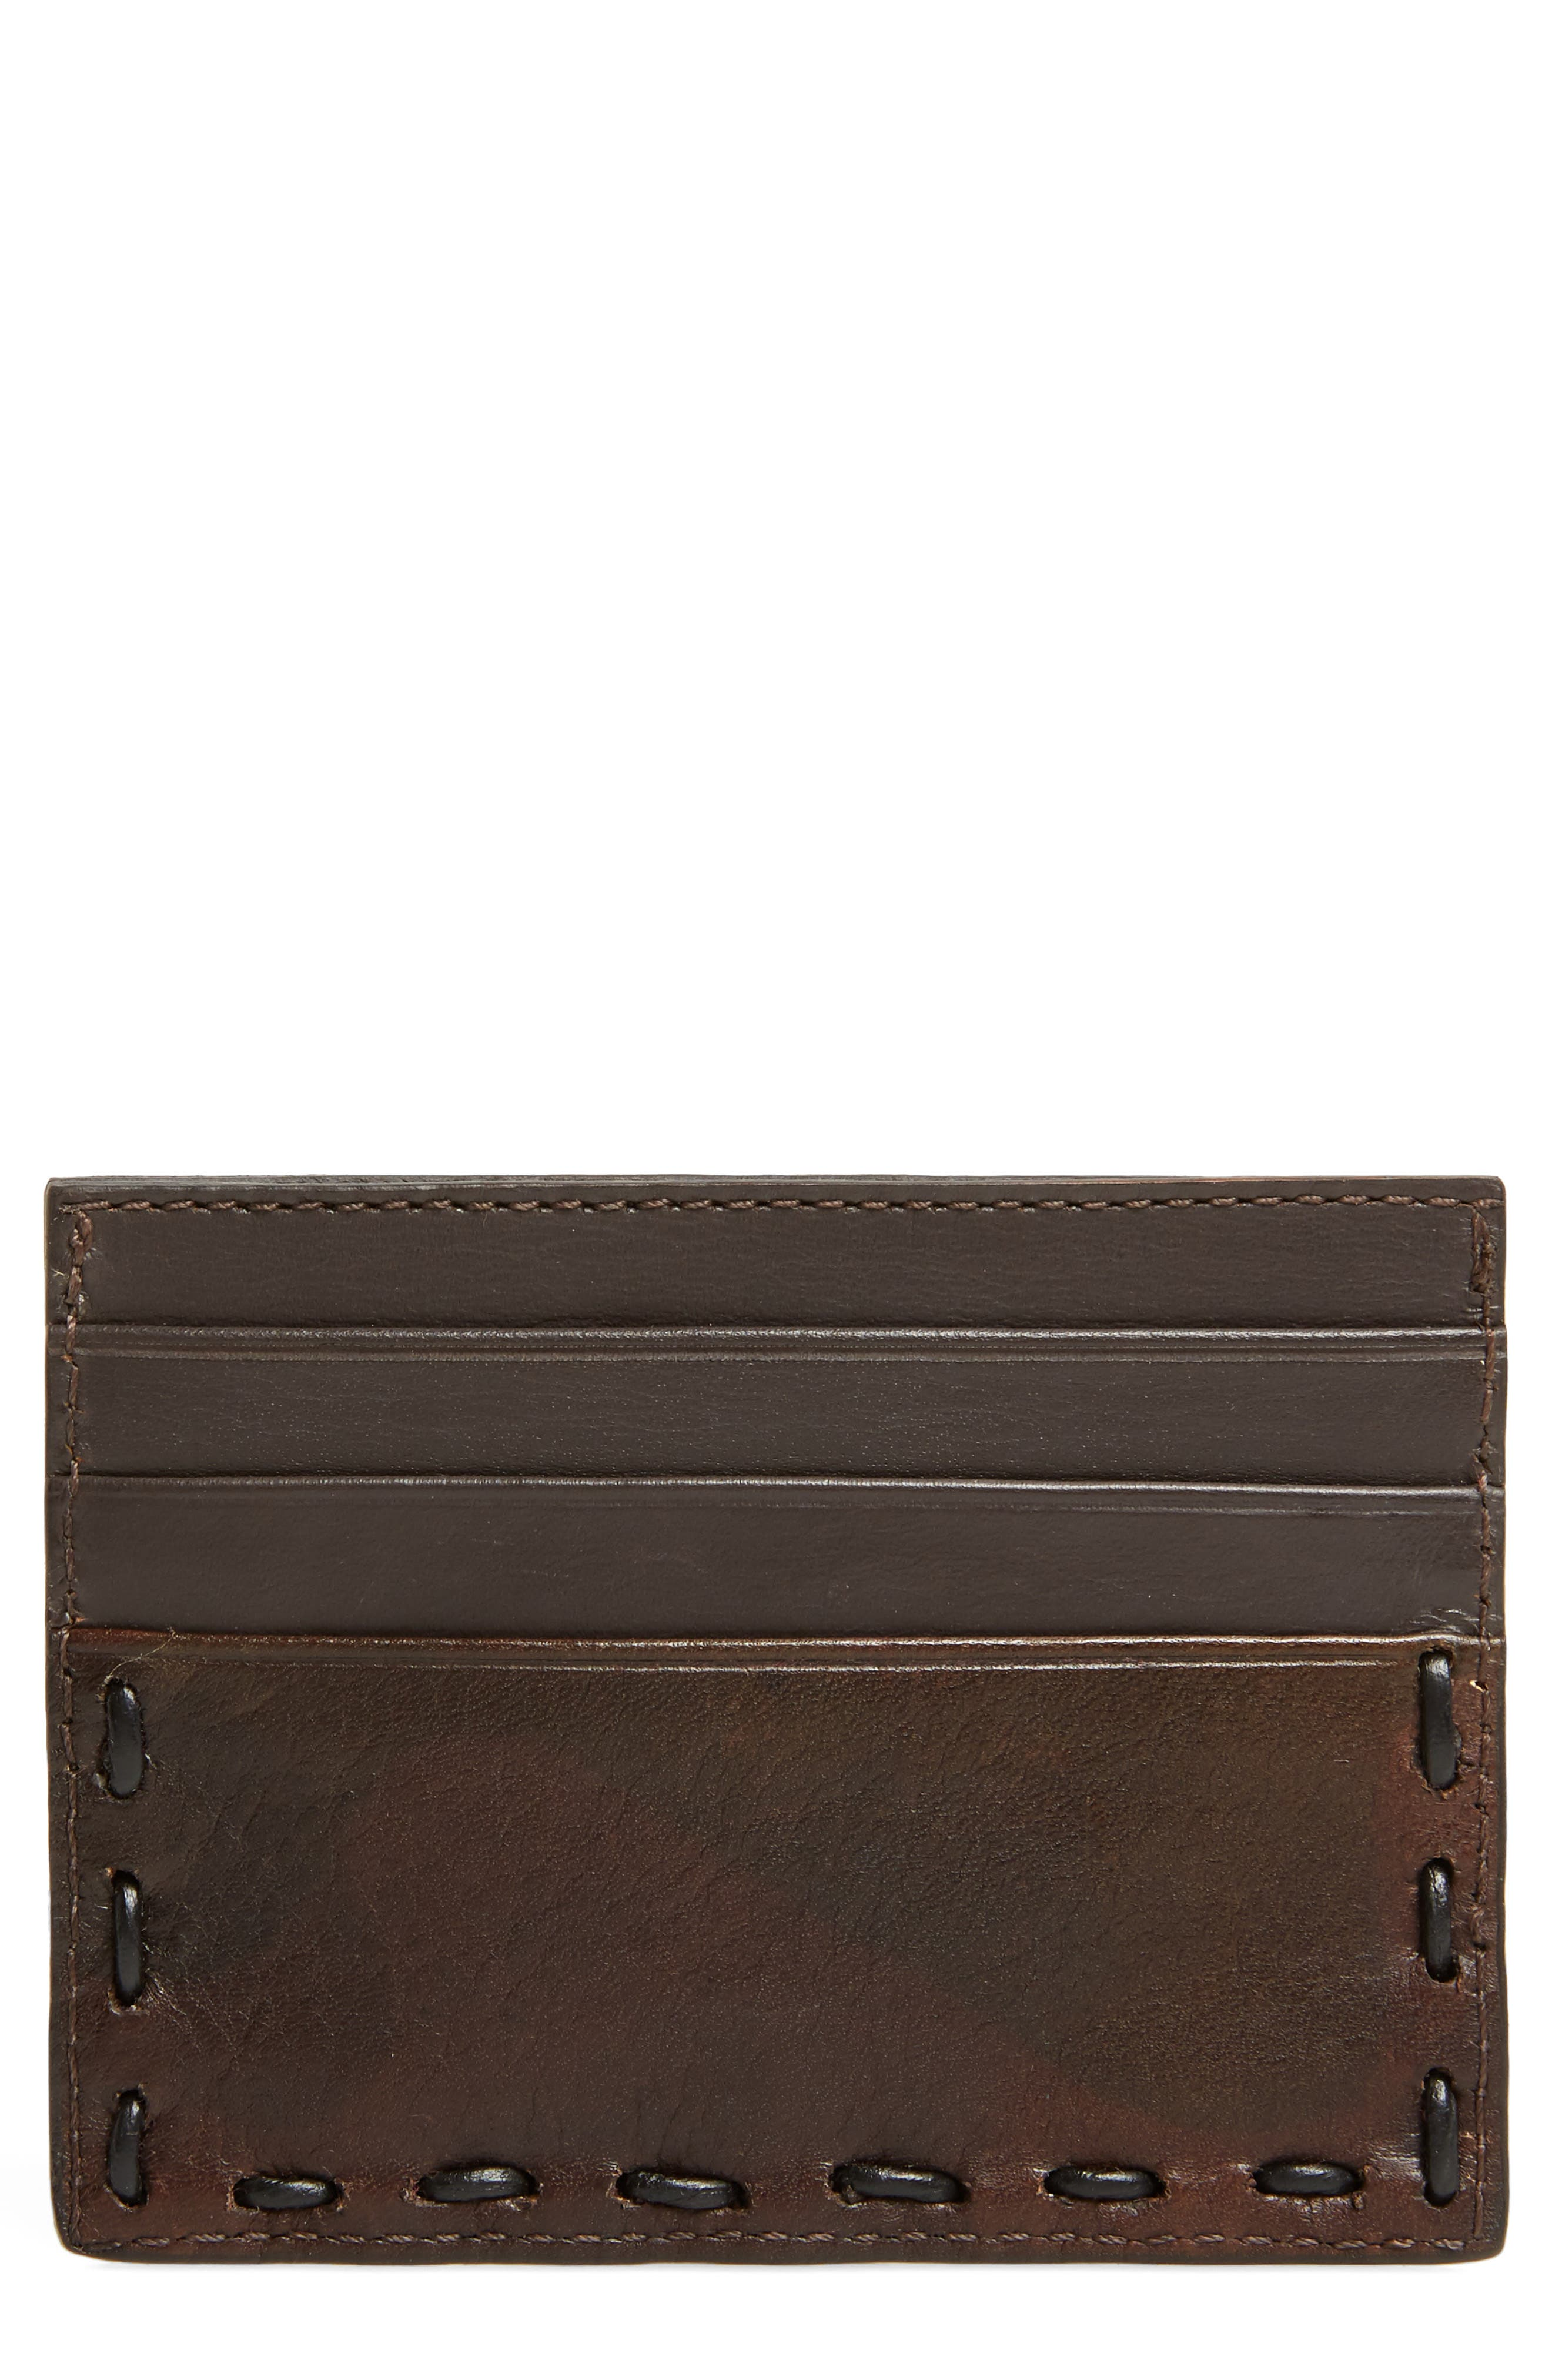 Pickstitched Leather Card Case,                         Main,                         color, Distressed Brown